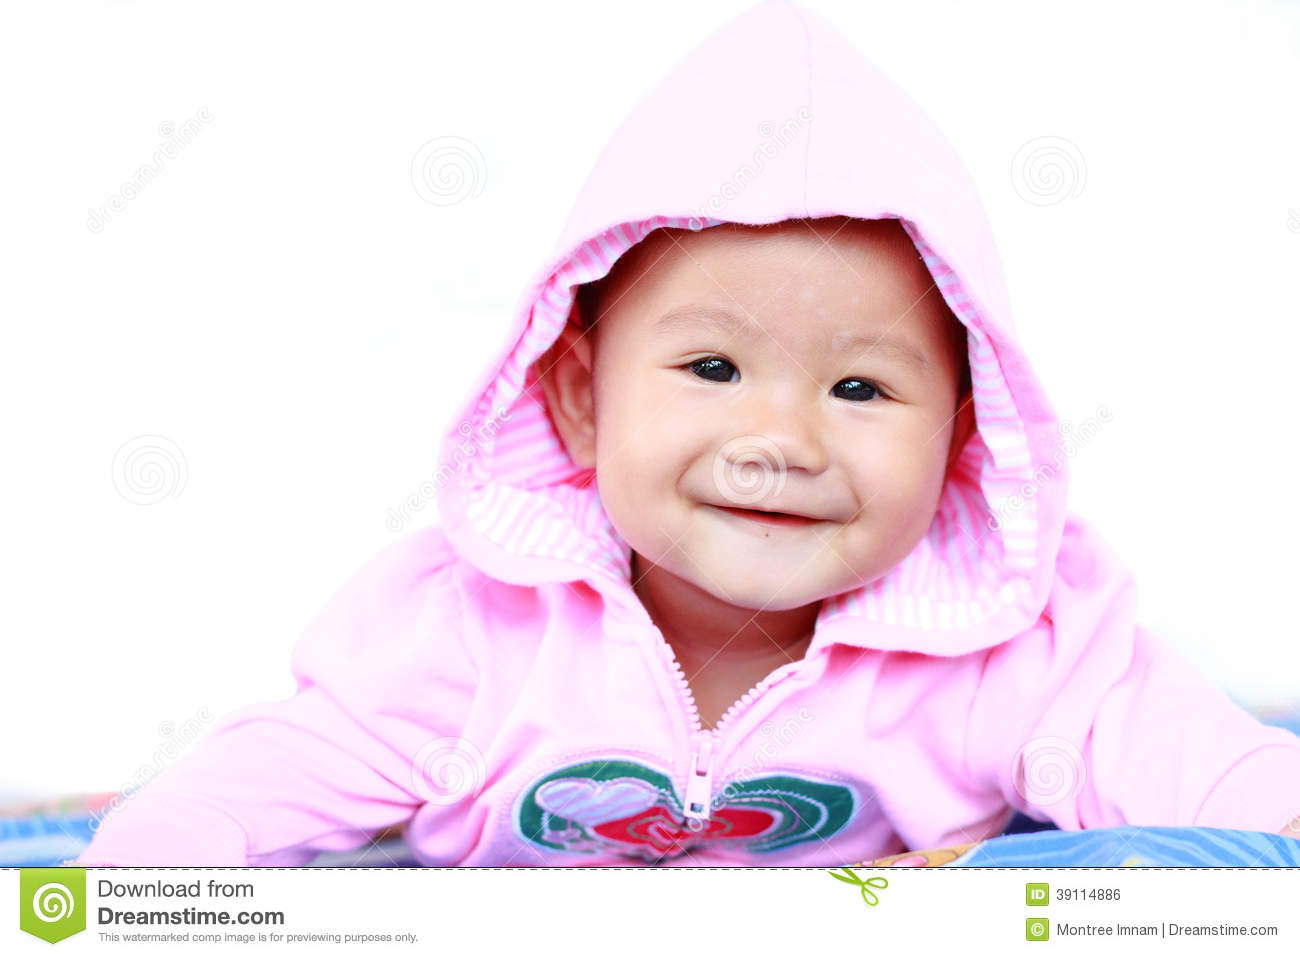 baby cute baby girl portrait stock photo - image of isolated